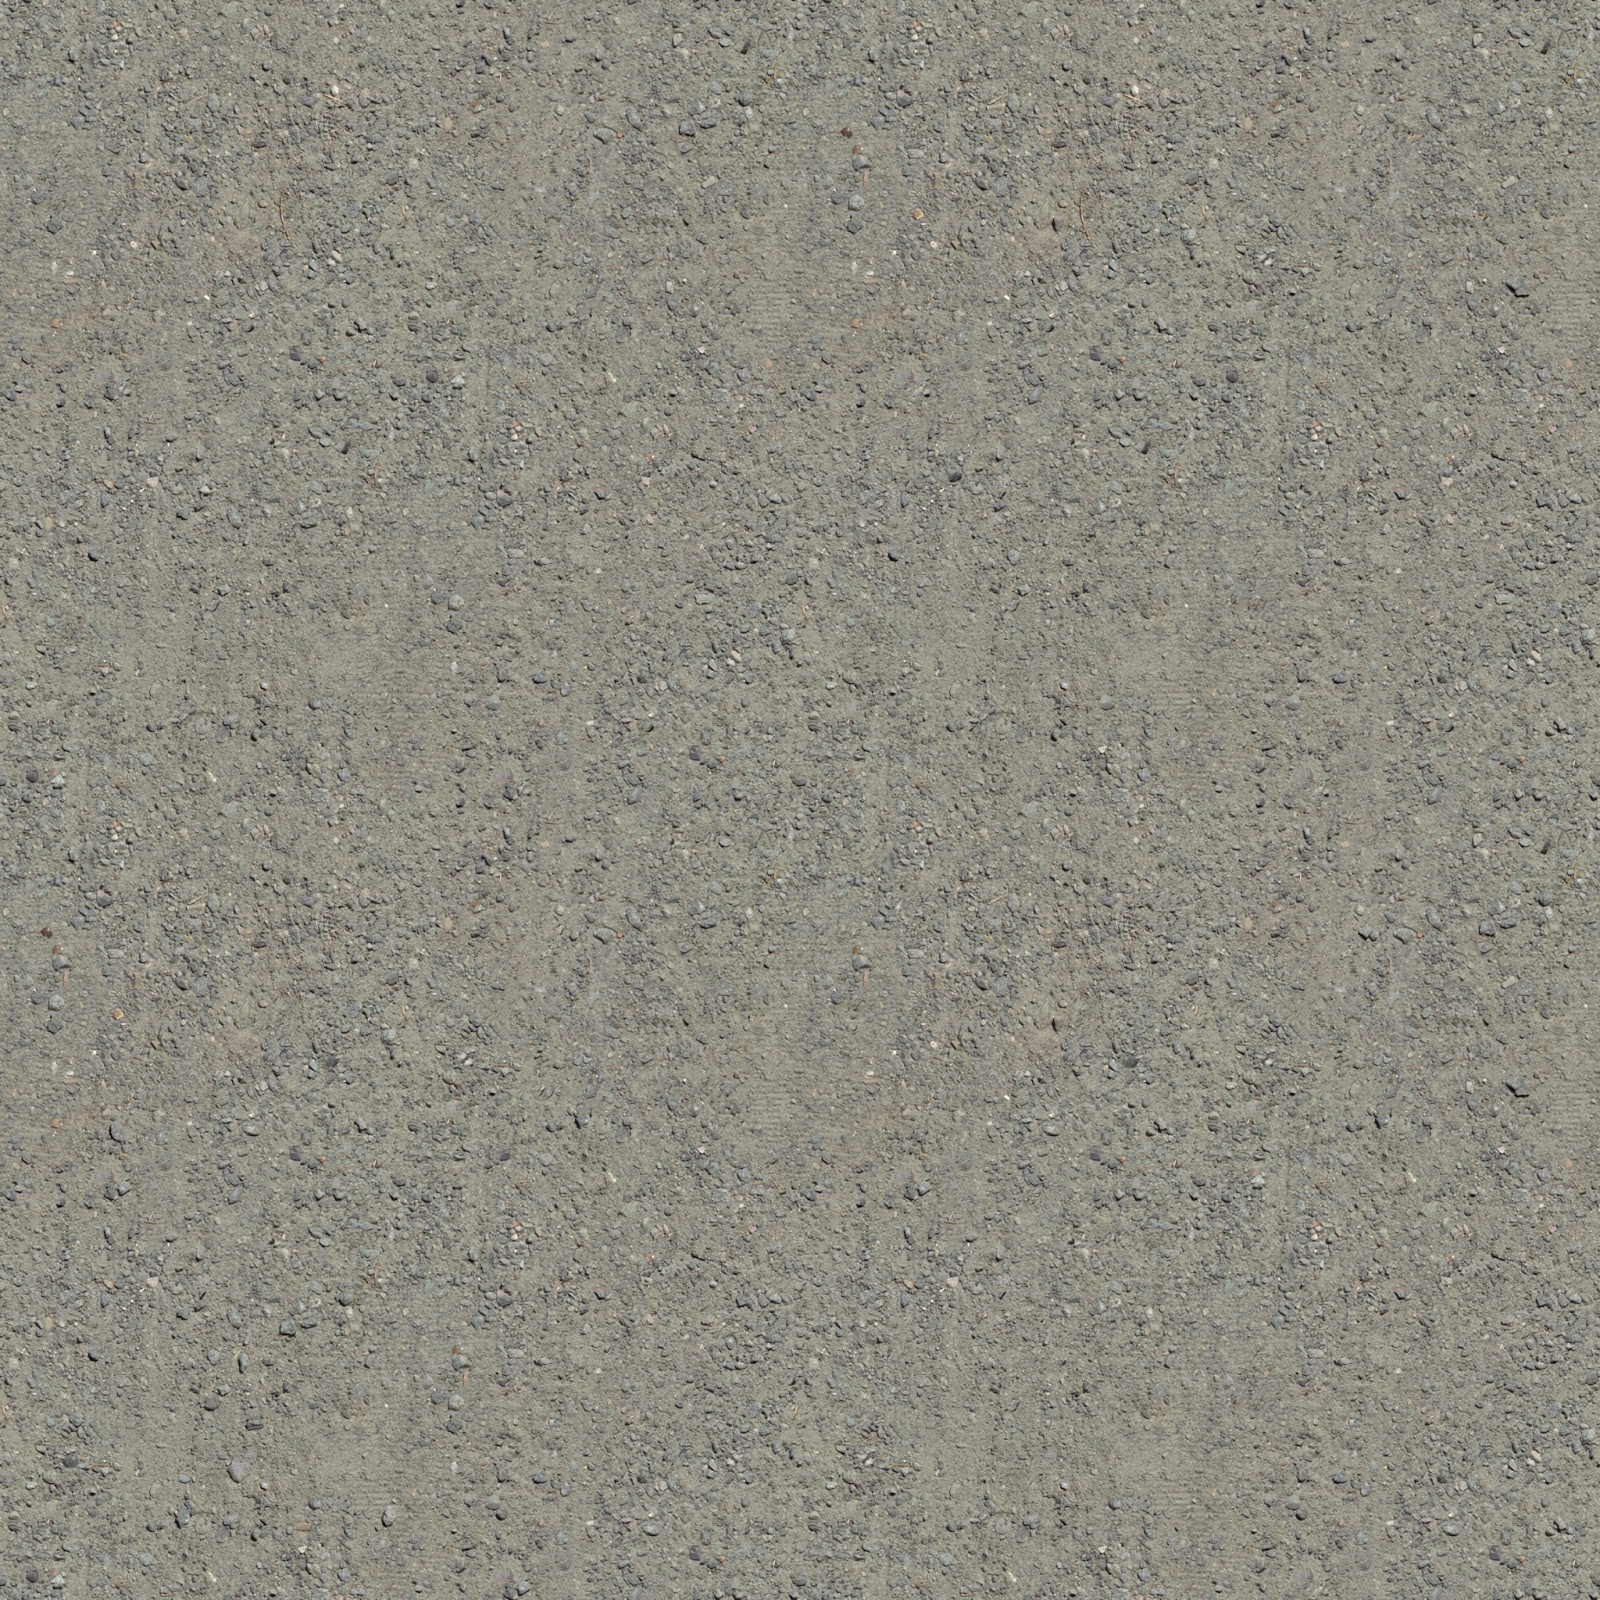 (DIRT 1) seamless soil dust dirt sand ground texture 2048x2048